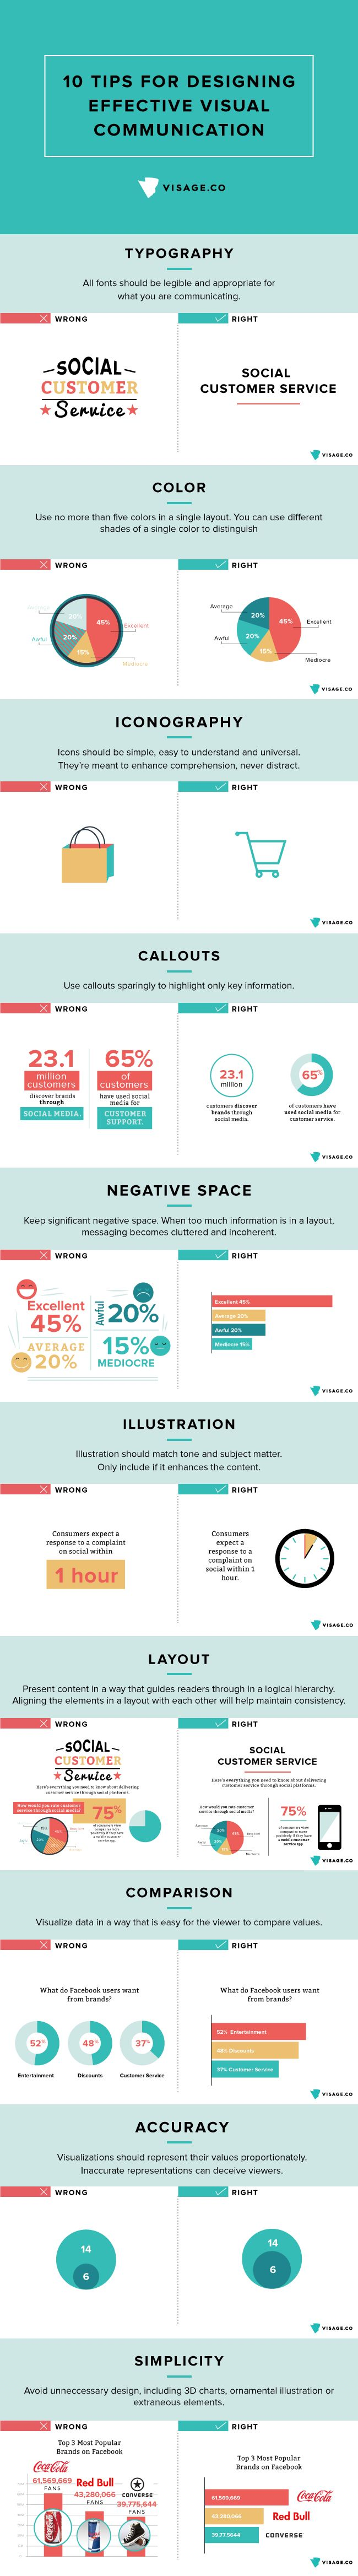 10 Tips For Designing Effective Visual Communication - #infographic #designing #contentmarketing #infografía